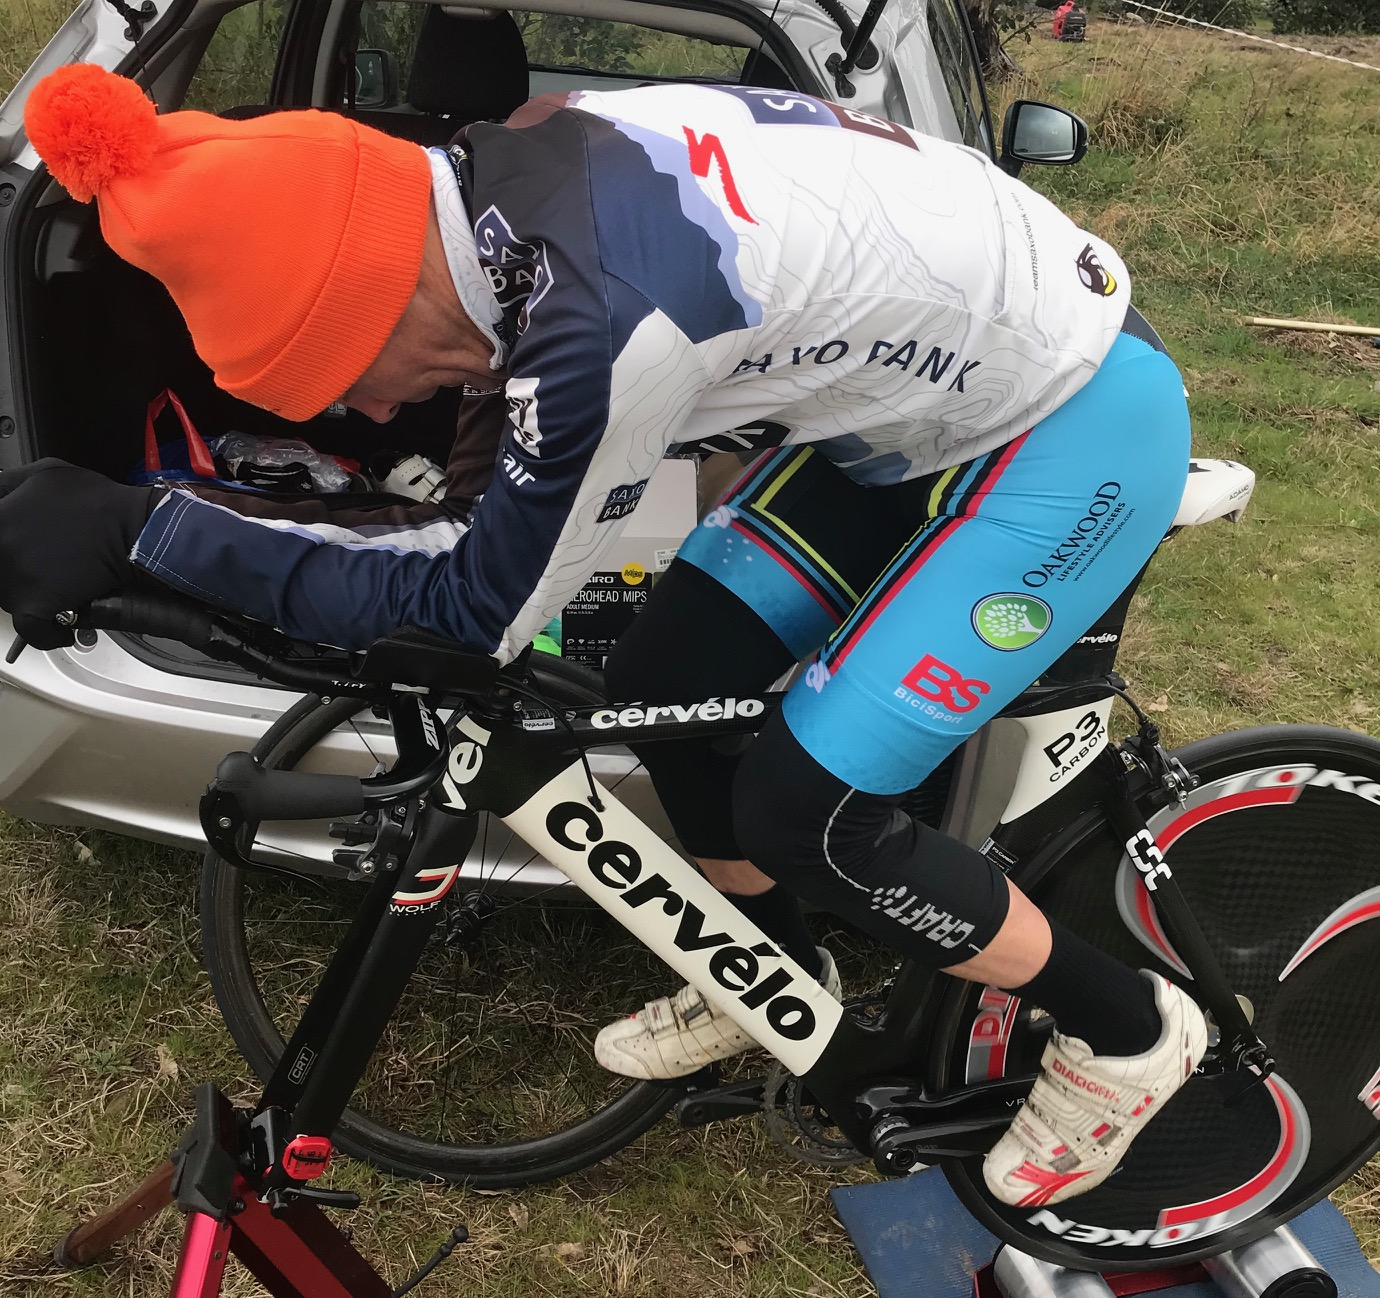 NSW Masters ITT Championships @ Gunning @ 7 Sept - Mike Lawson warms up in freezing conditions